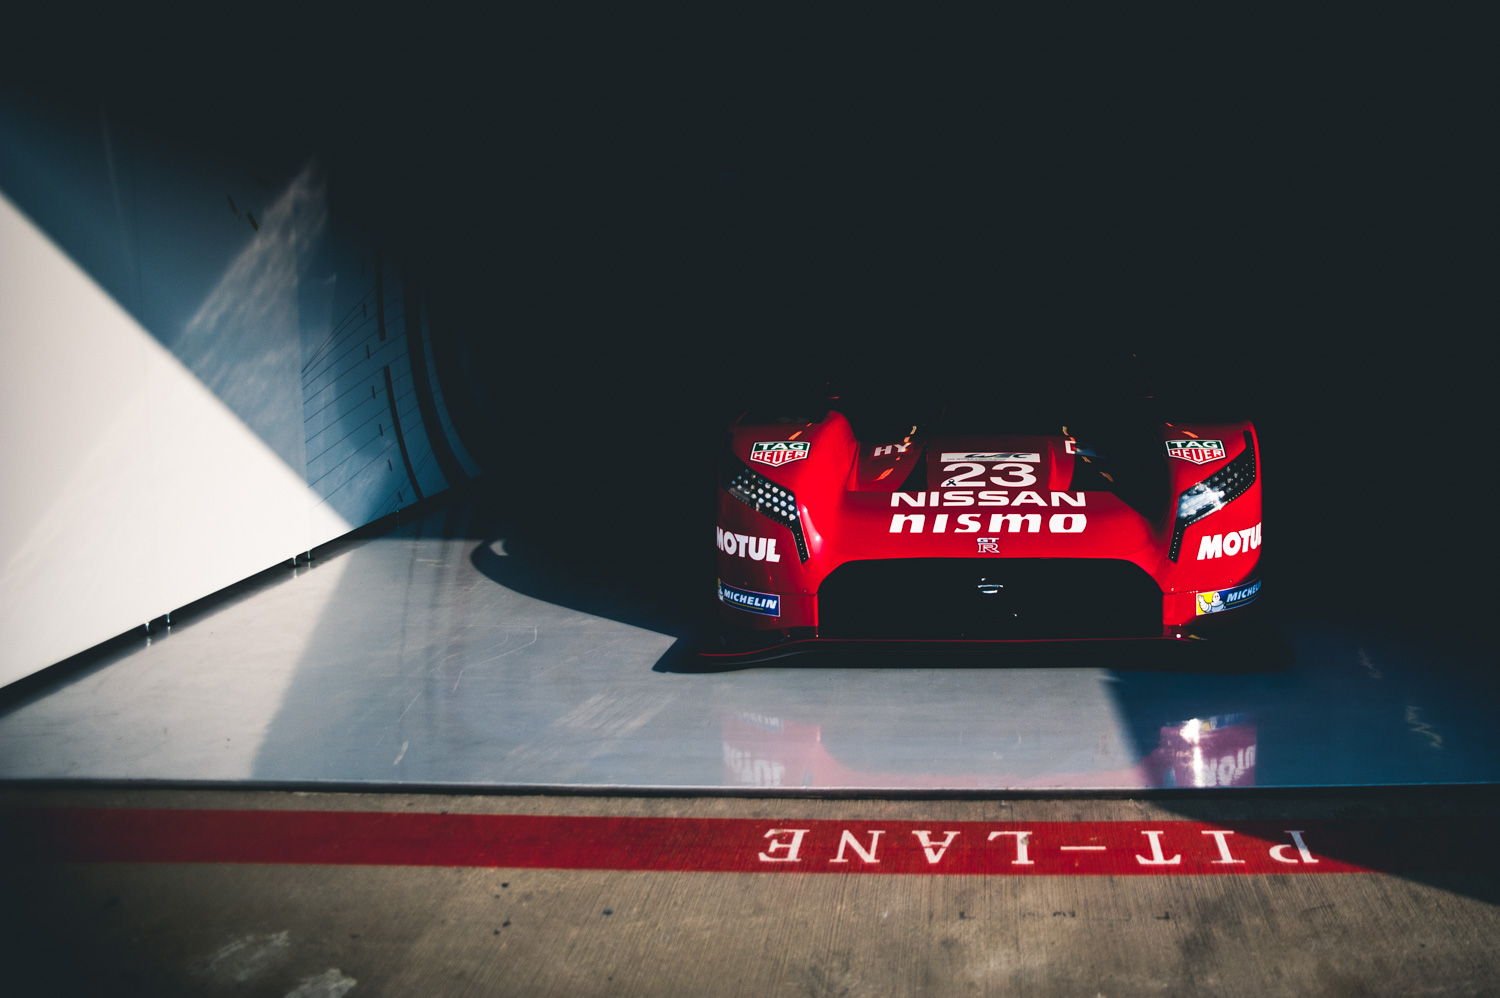 Jayson-Fong-Photography-Form-and-function-international-Nismo-GTR-Le-Mans.jpg